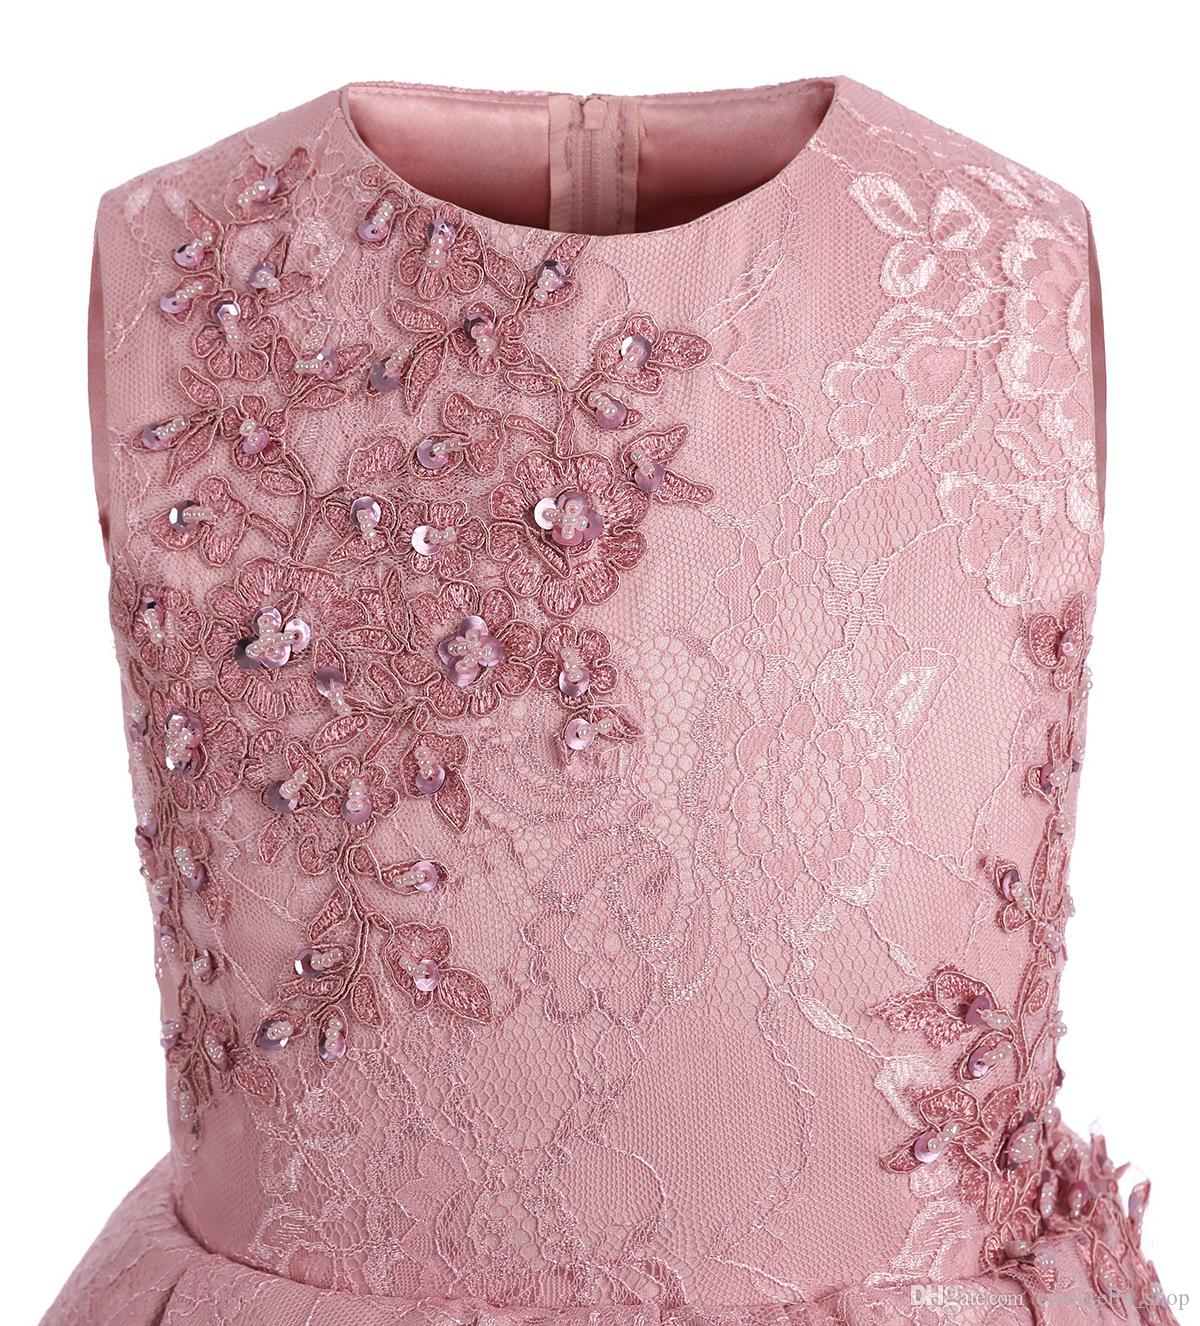 2018 Short Blush Girls Pageant Dresses Jewel Neck Tiered Appliques Beaded Sequins Mini Flower Girl Birthday Party First Communion Gowns